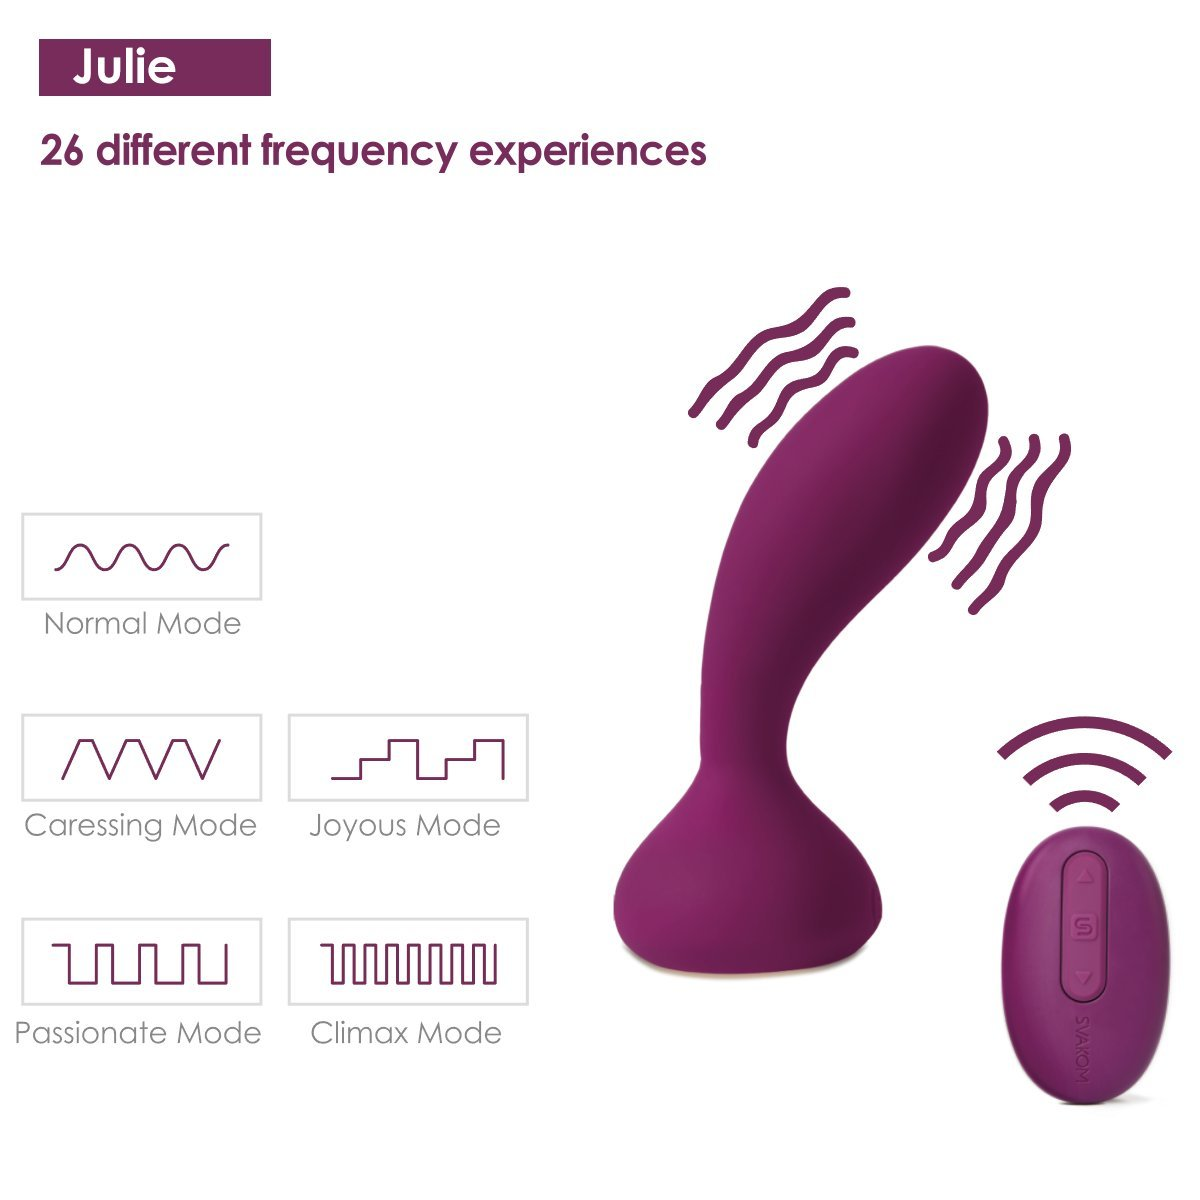 SVAKOM Julie Vibrating Anal Vibrator Prostate Massager with Wireless Remote Control Body Silicon Butt Plug for Male Orgasmo Waterproof Sex Toys for Couple for Woman (Violet)